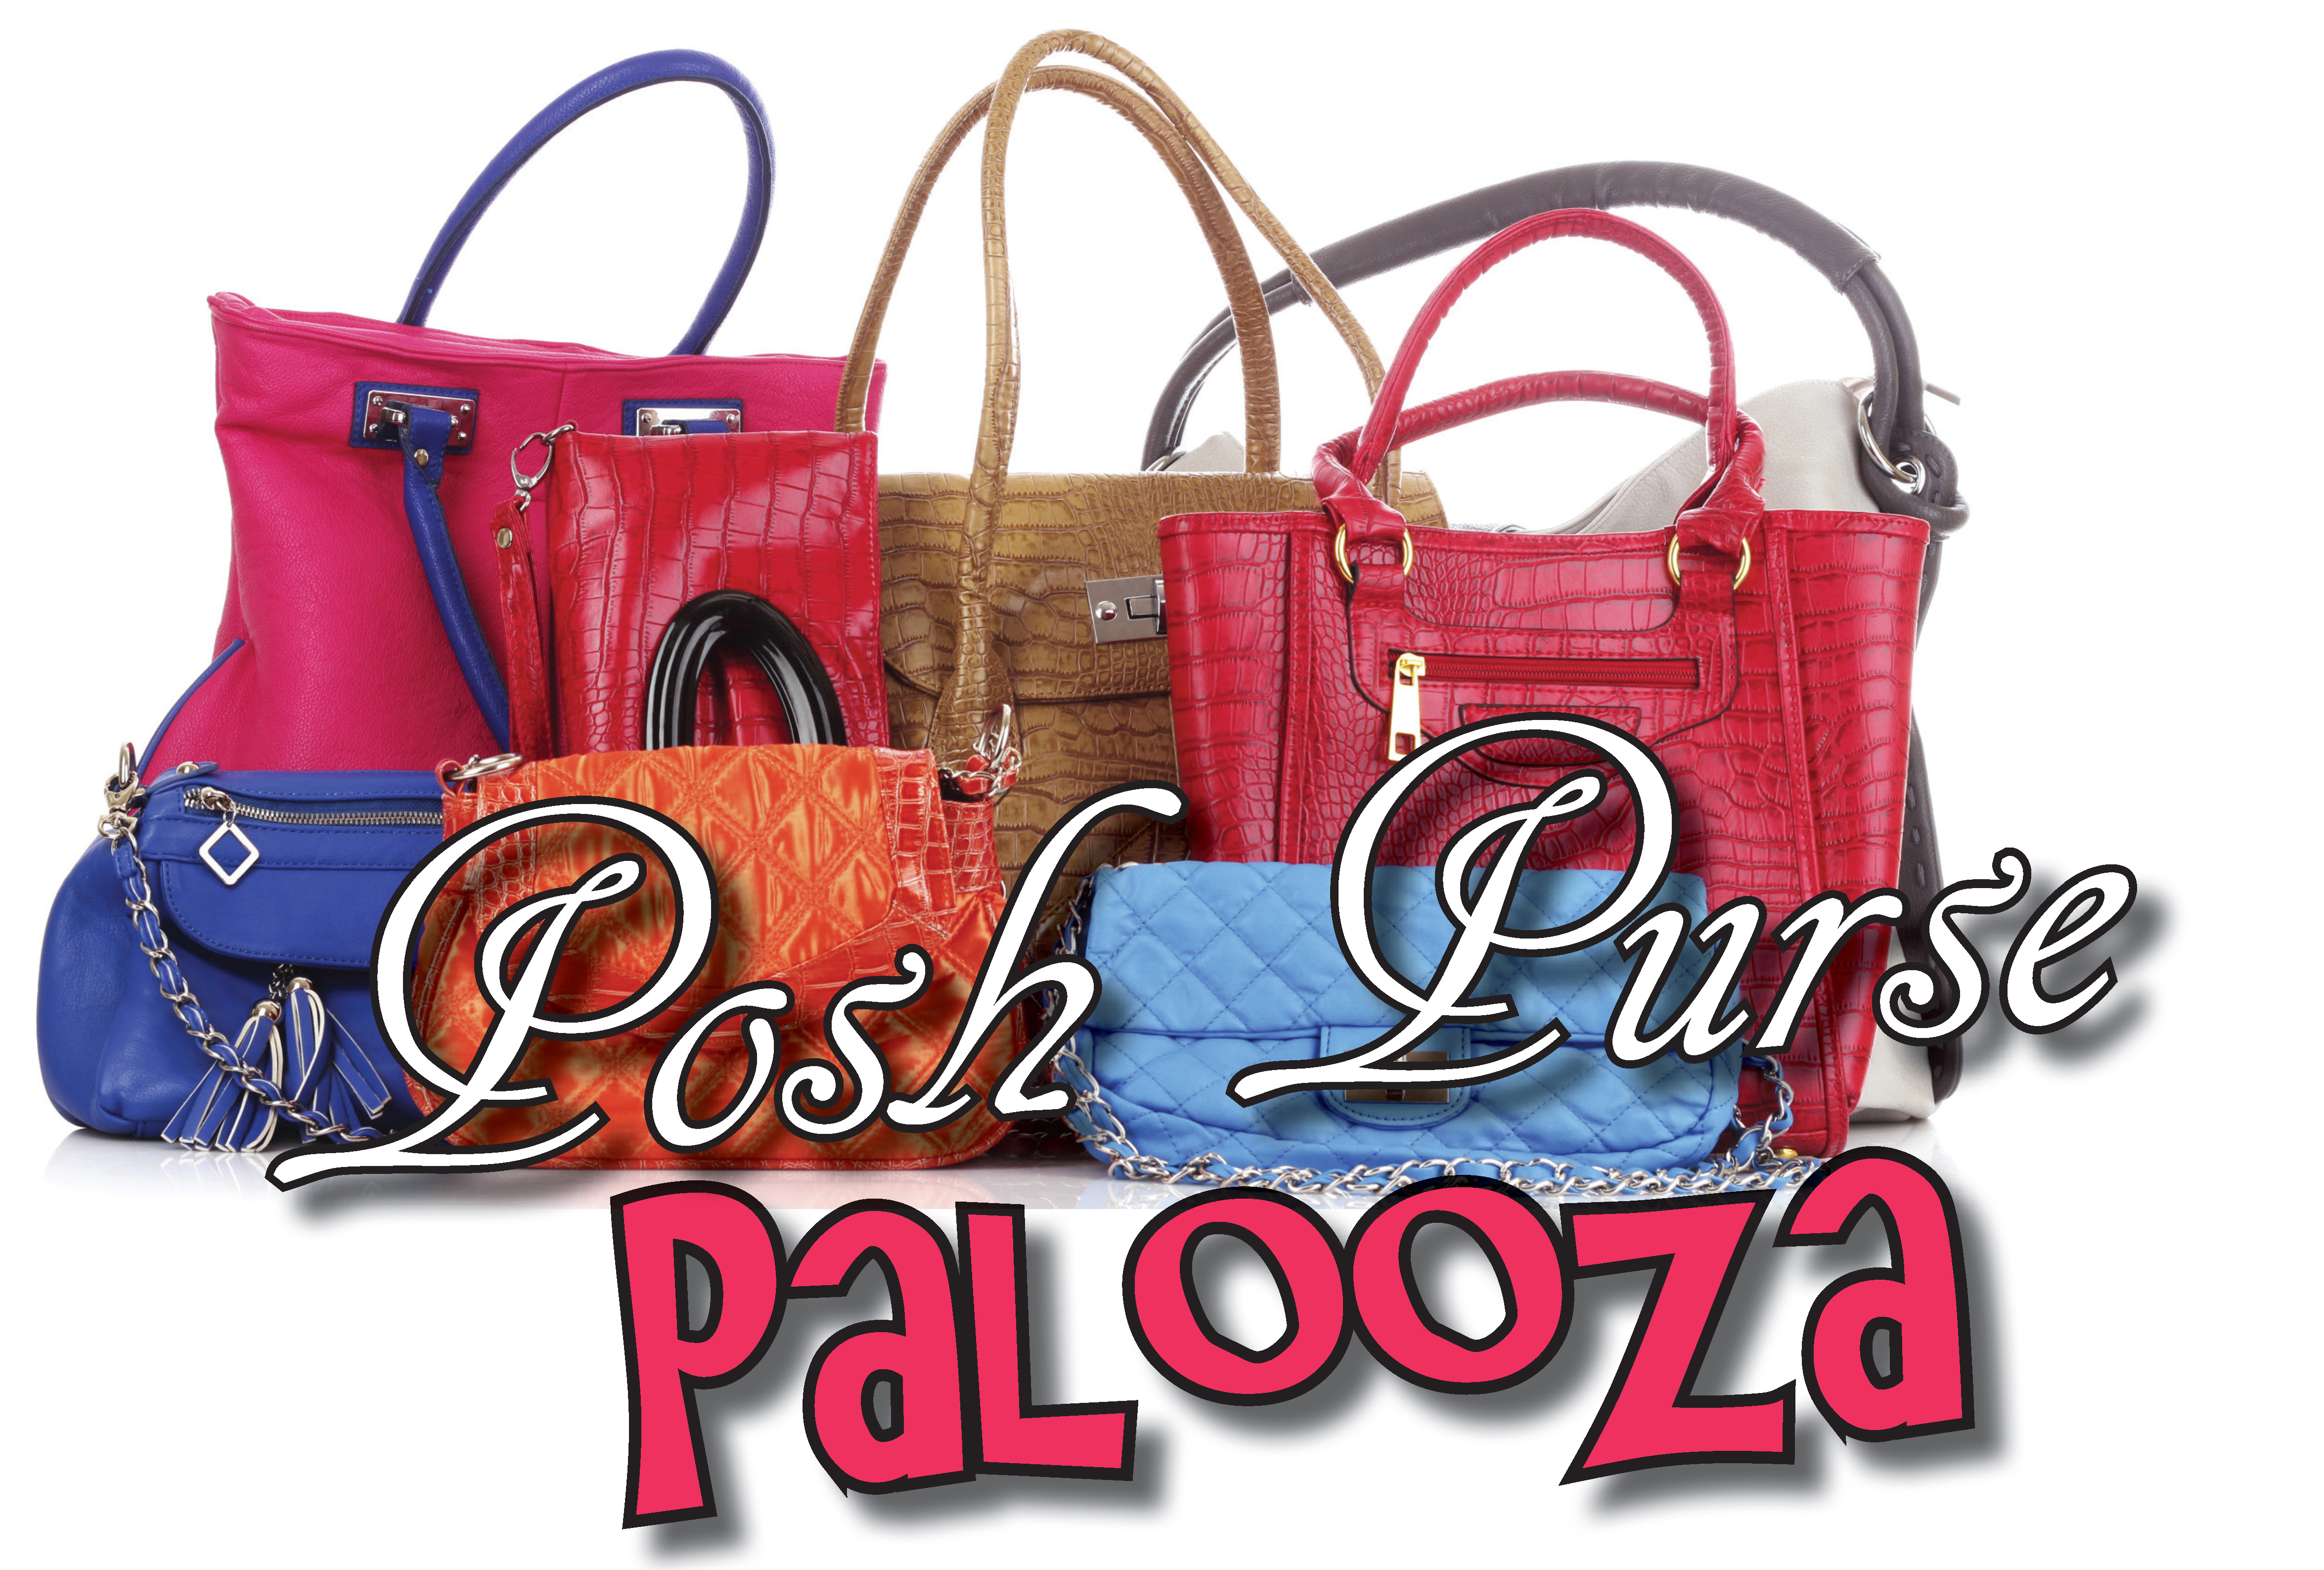 6th Annual Posh Purse Palooza